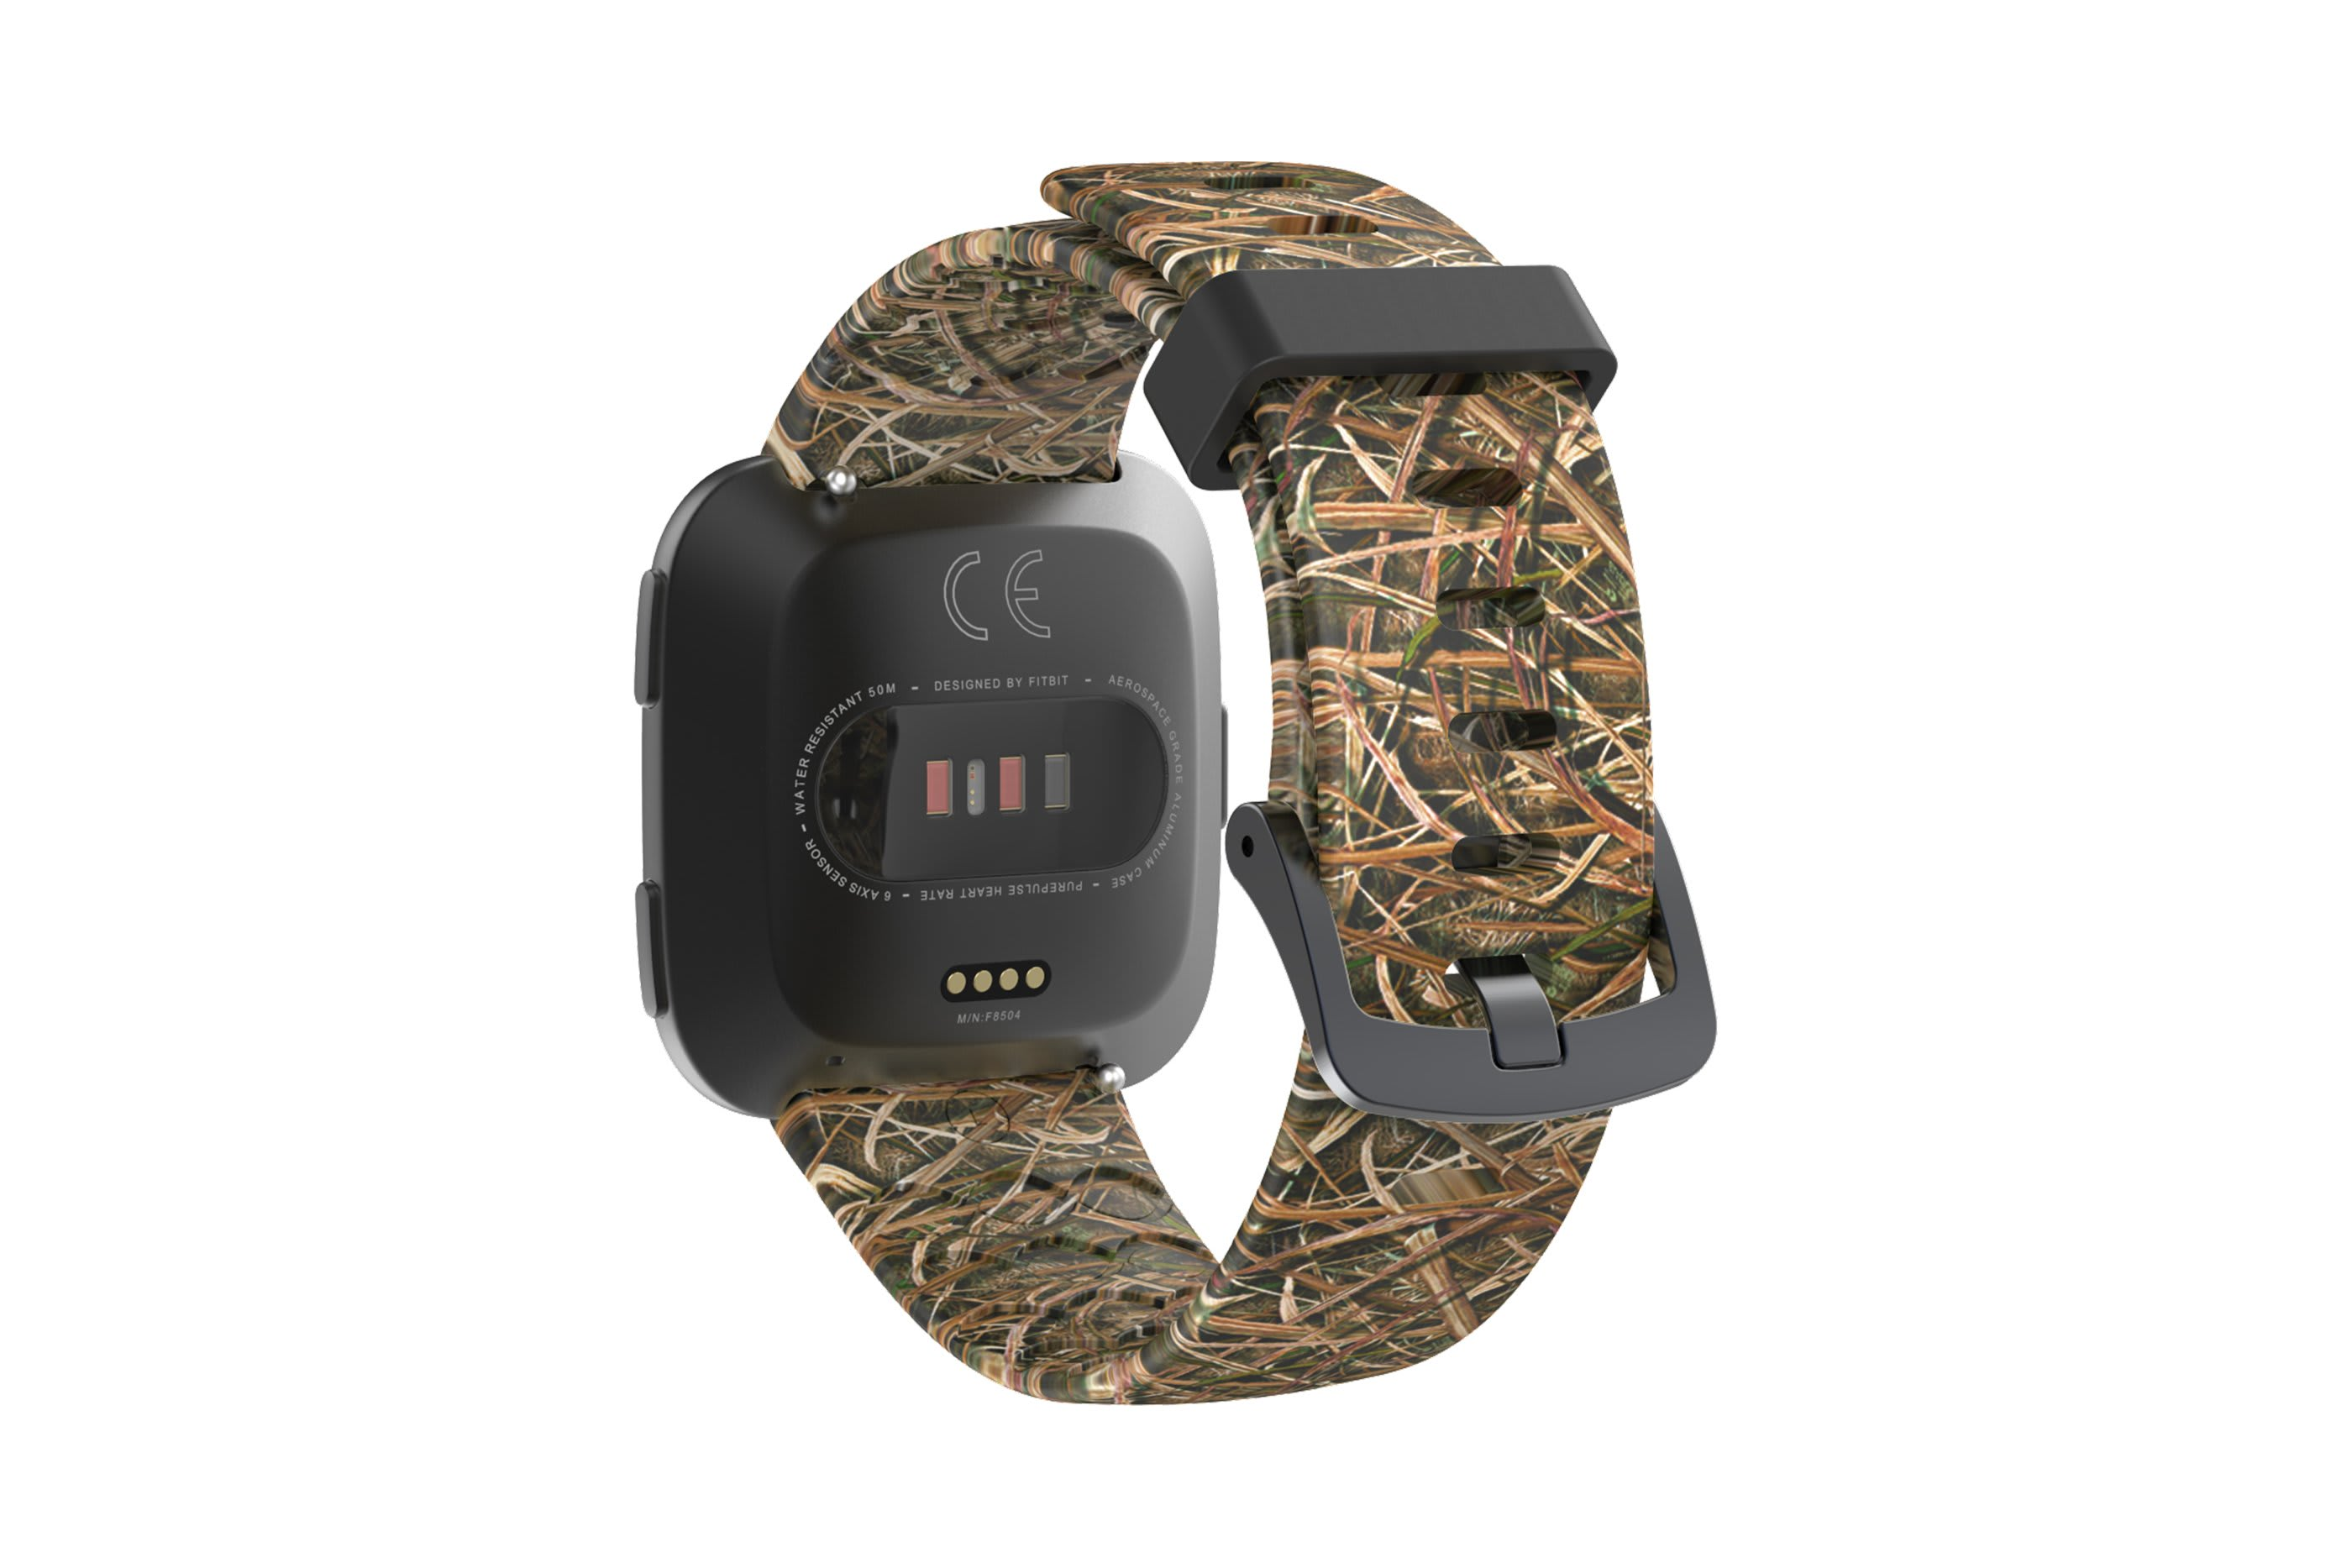 Mossy Oak Blades fitbit versa watch band with gray hardware viewed from rear